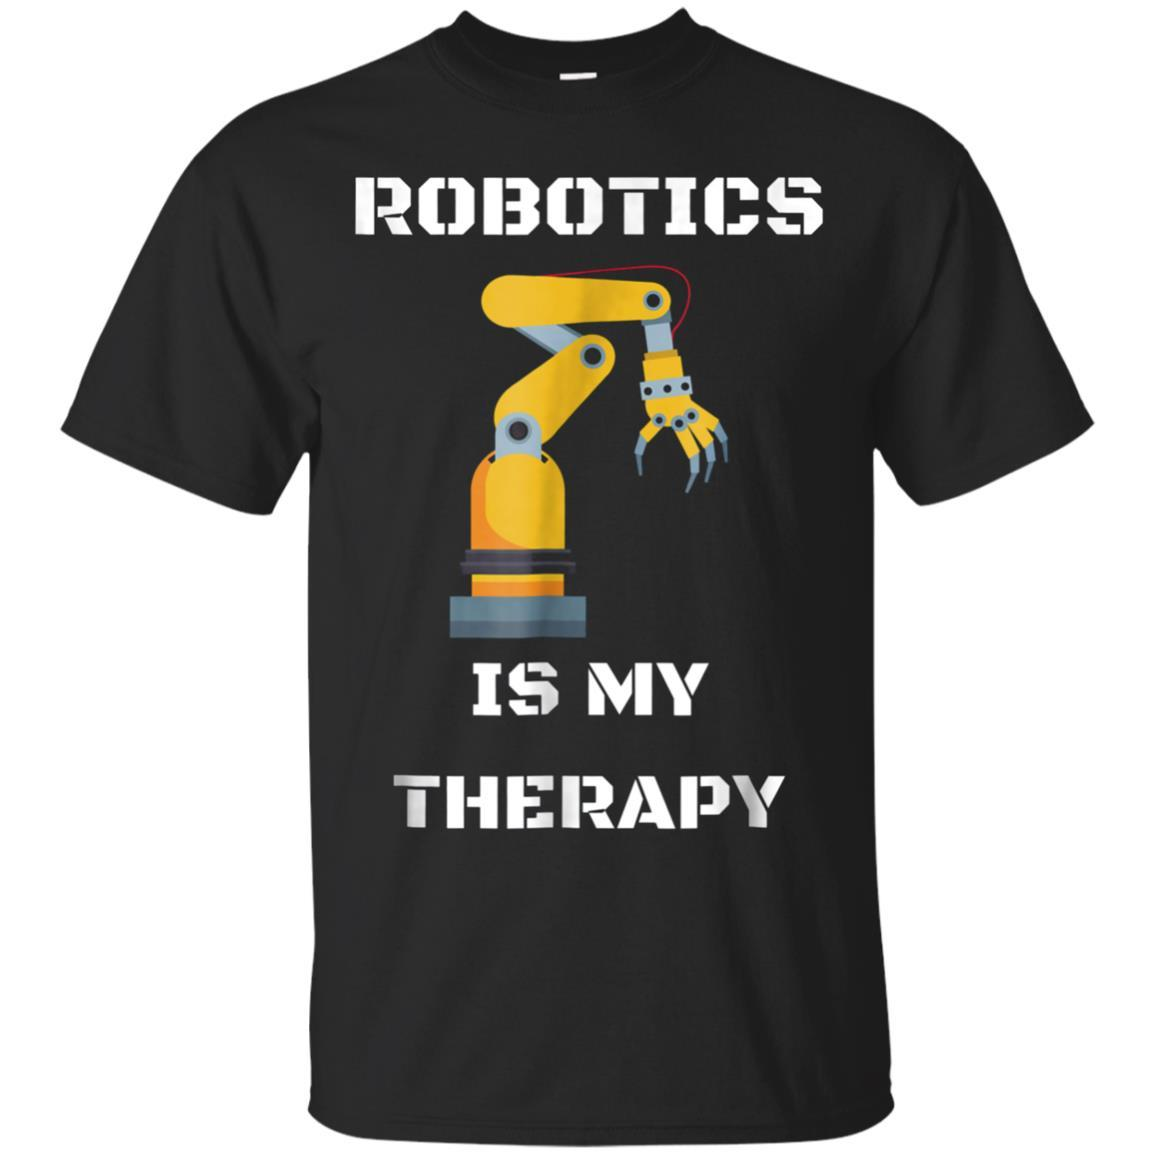 Robotics Is My Therapy T-shirt